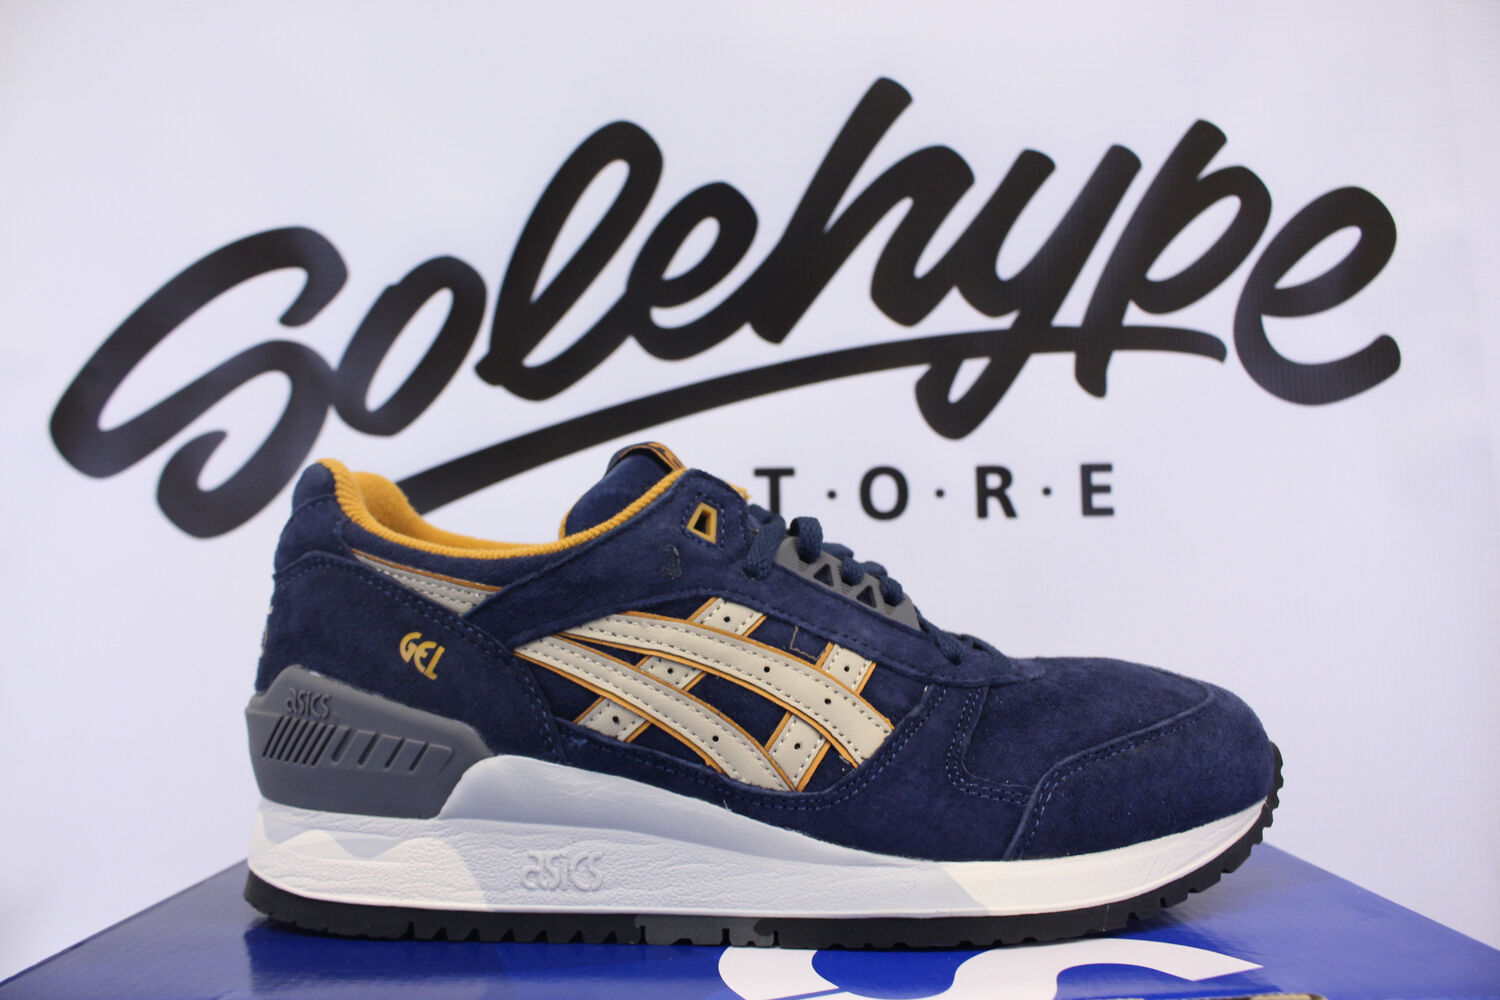 ASICS GEL RESPECTOR PREMIUM CASUAL PACK NAVY SAND H5X2L 5005 SZ 10.5